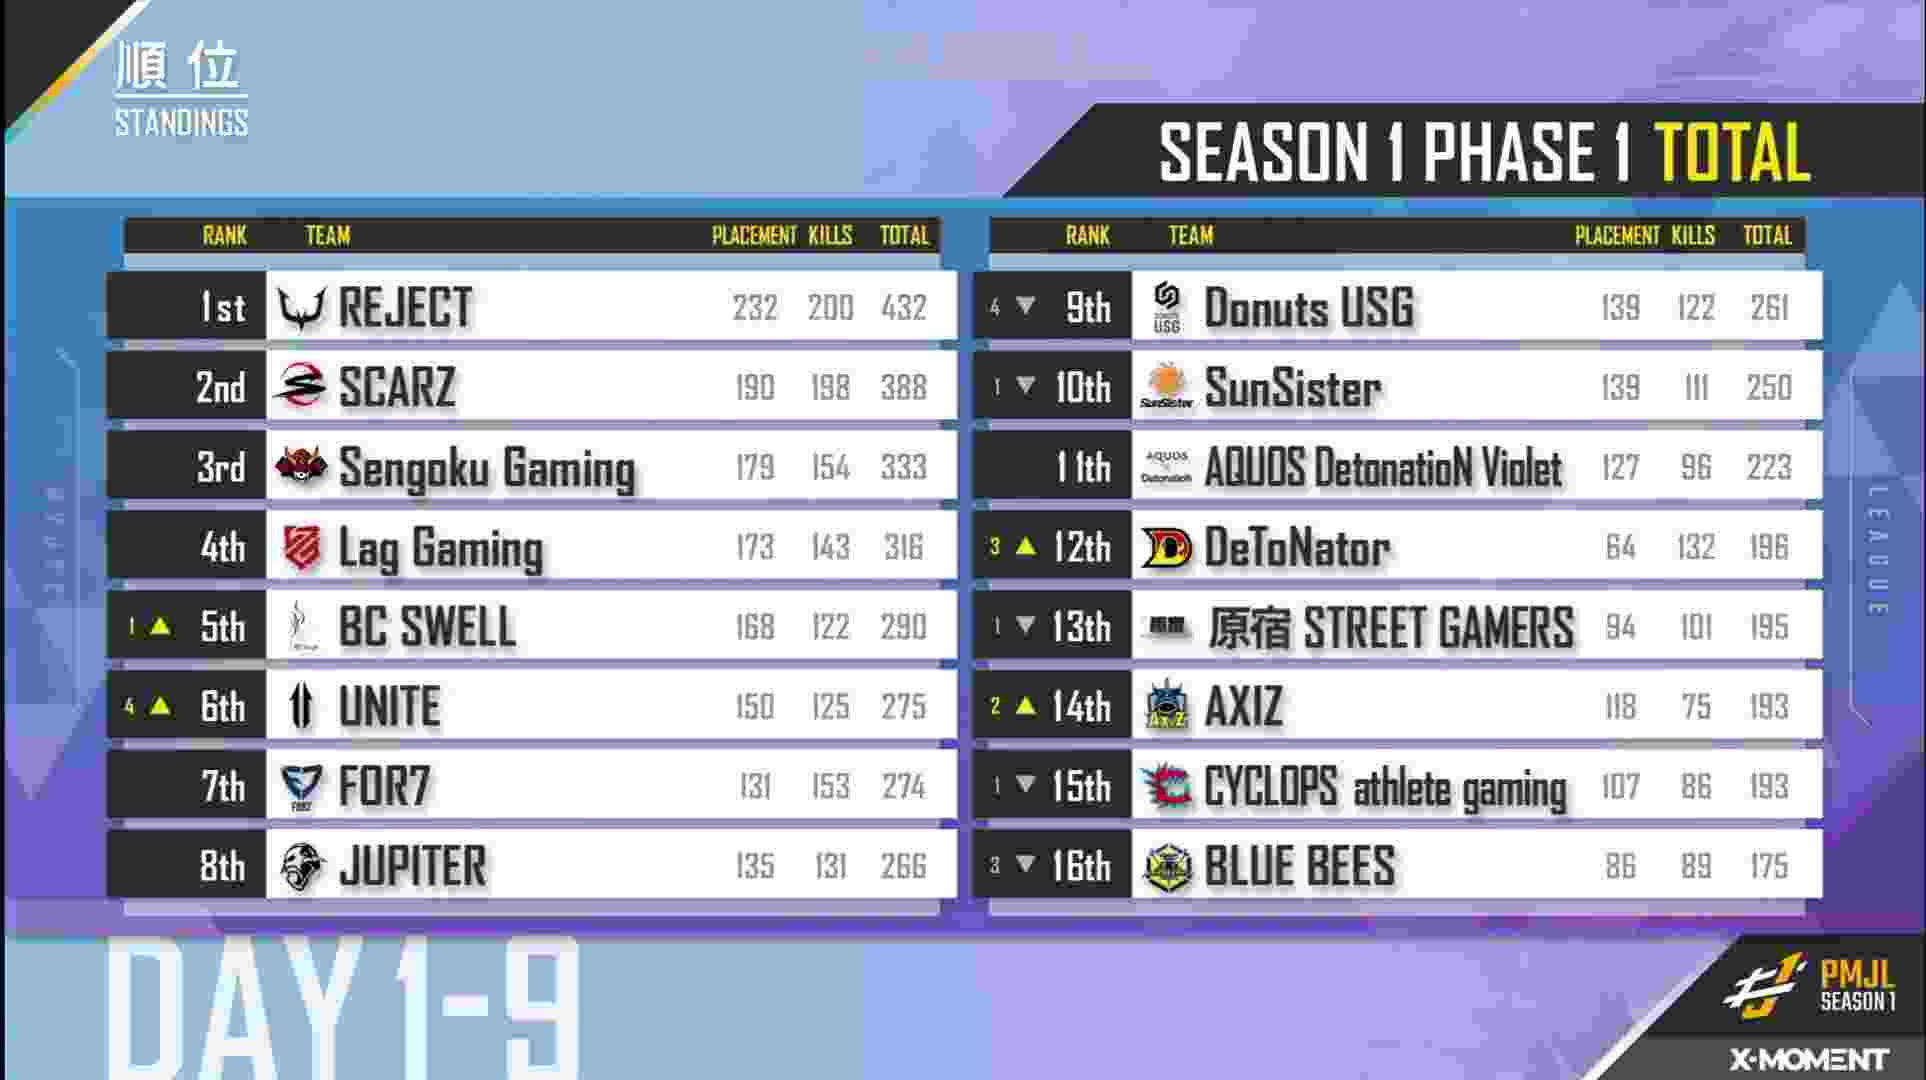 PMJL Season 1: Overall Standings After Day 9